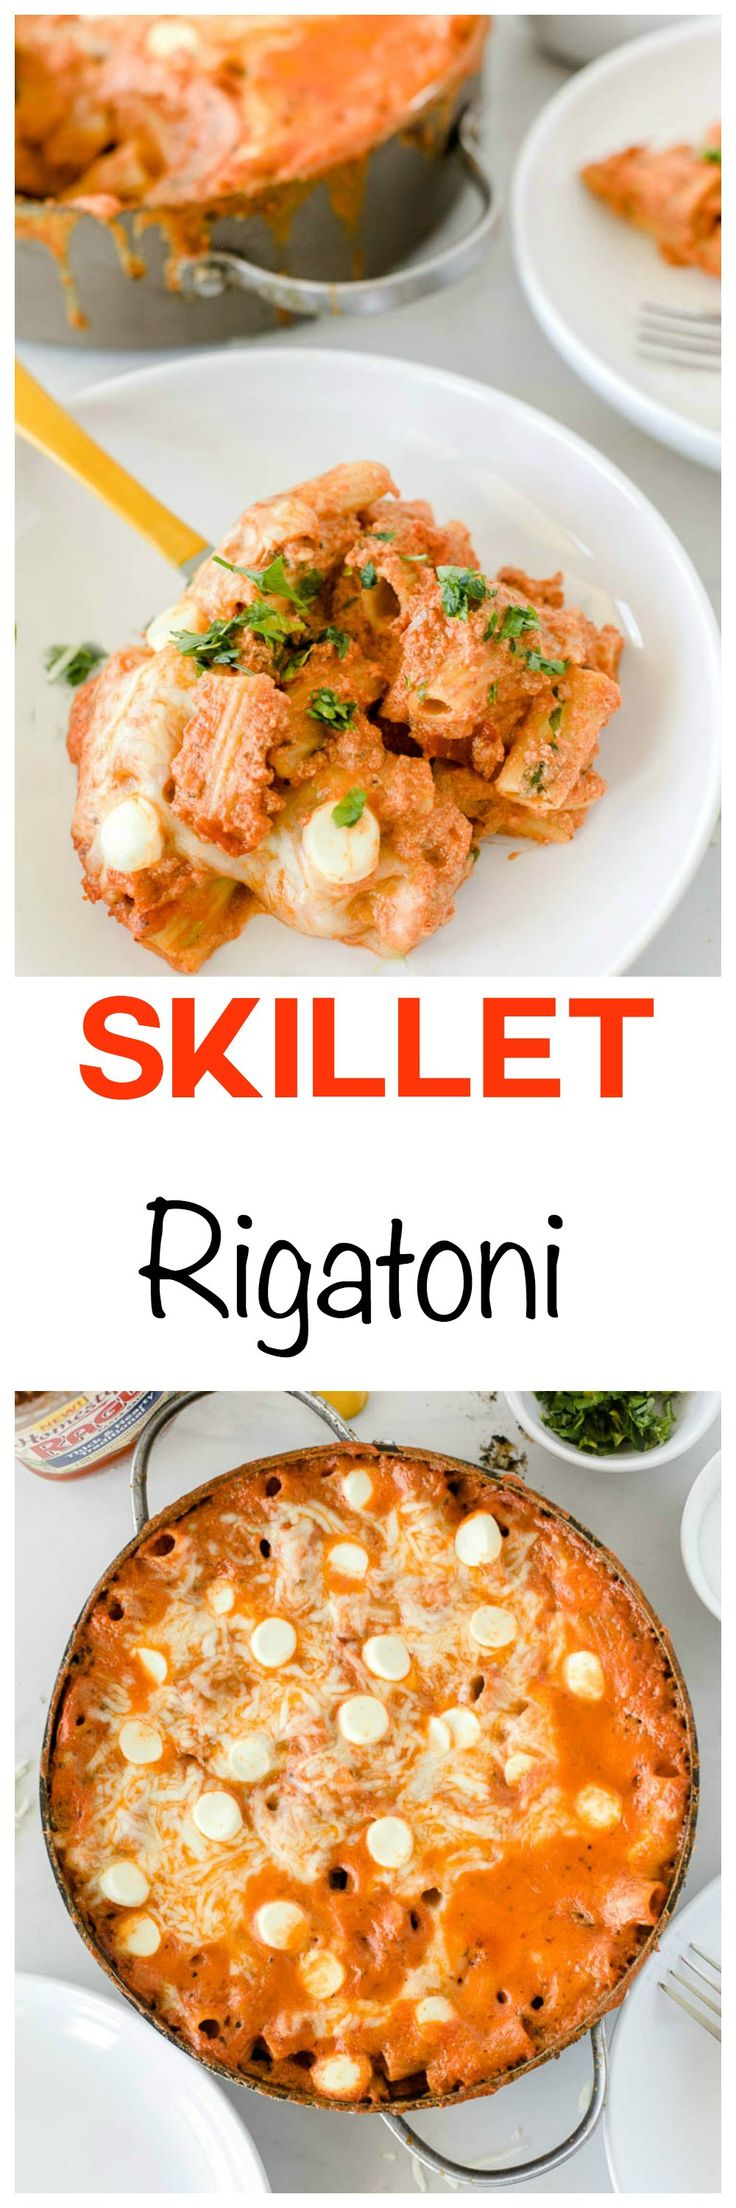 Skillet Sausage Rigatoni   Recipe   Baked ziti, Spicy and ...